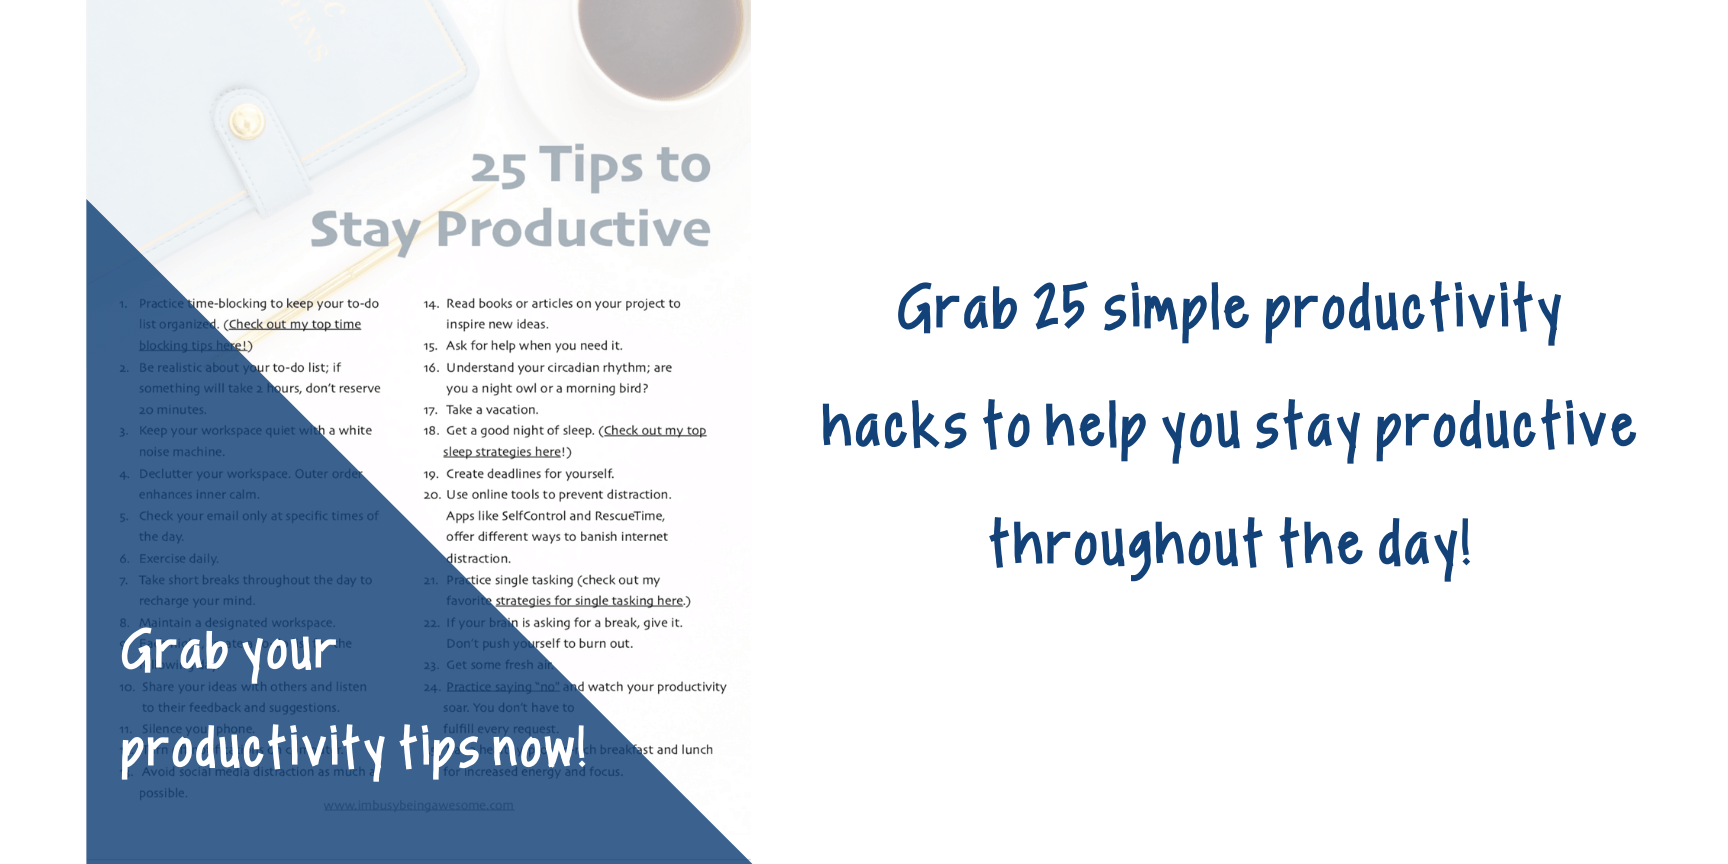 Grab 25 simple productivity tacks to help you stay productive throughout the day.